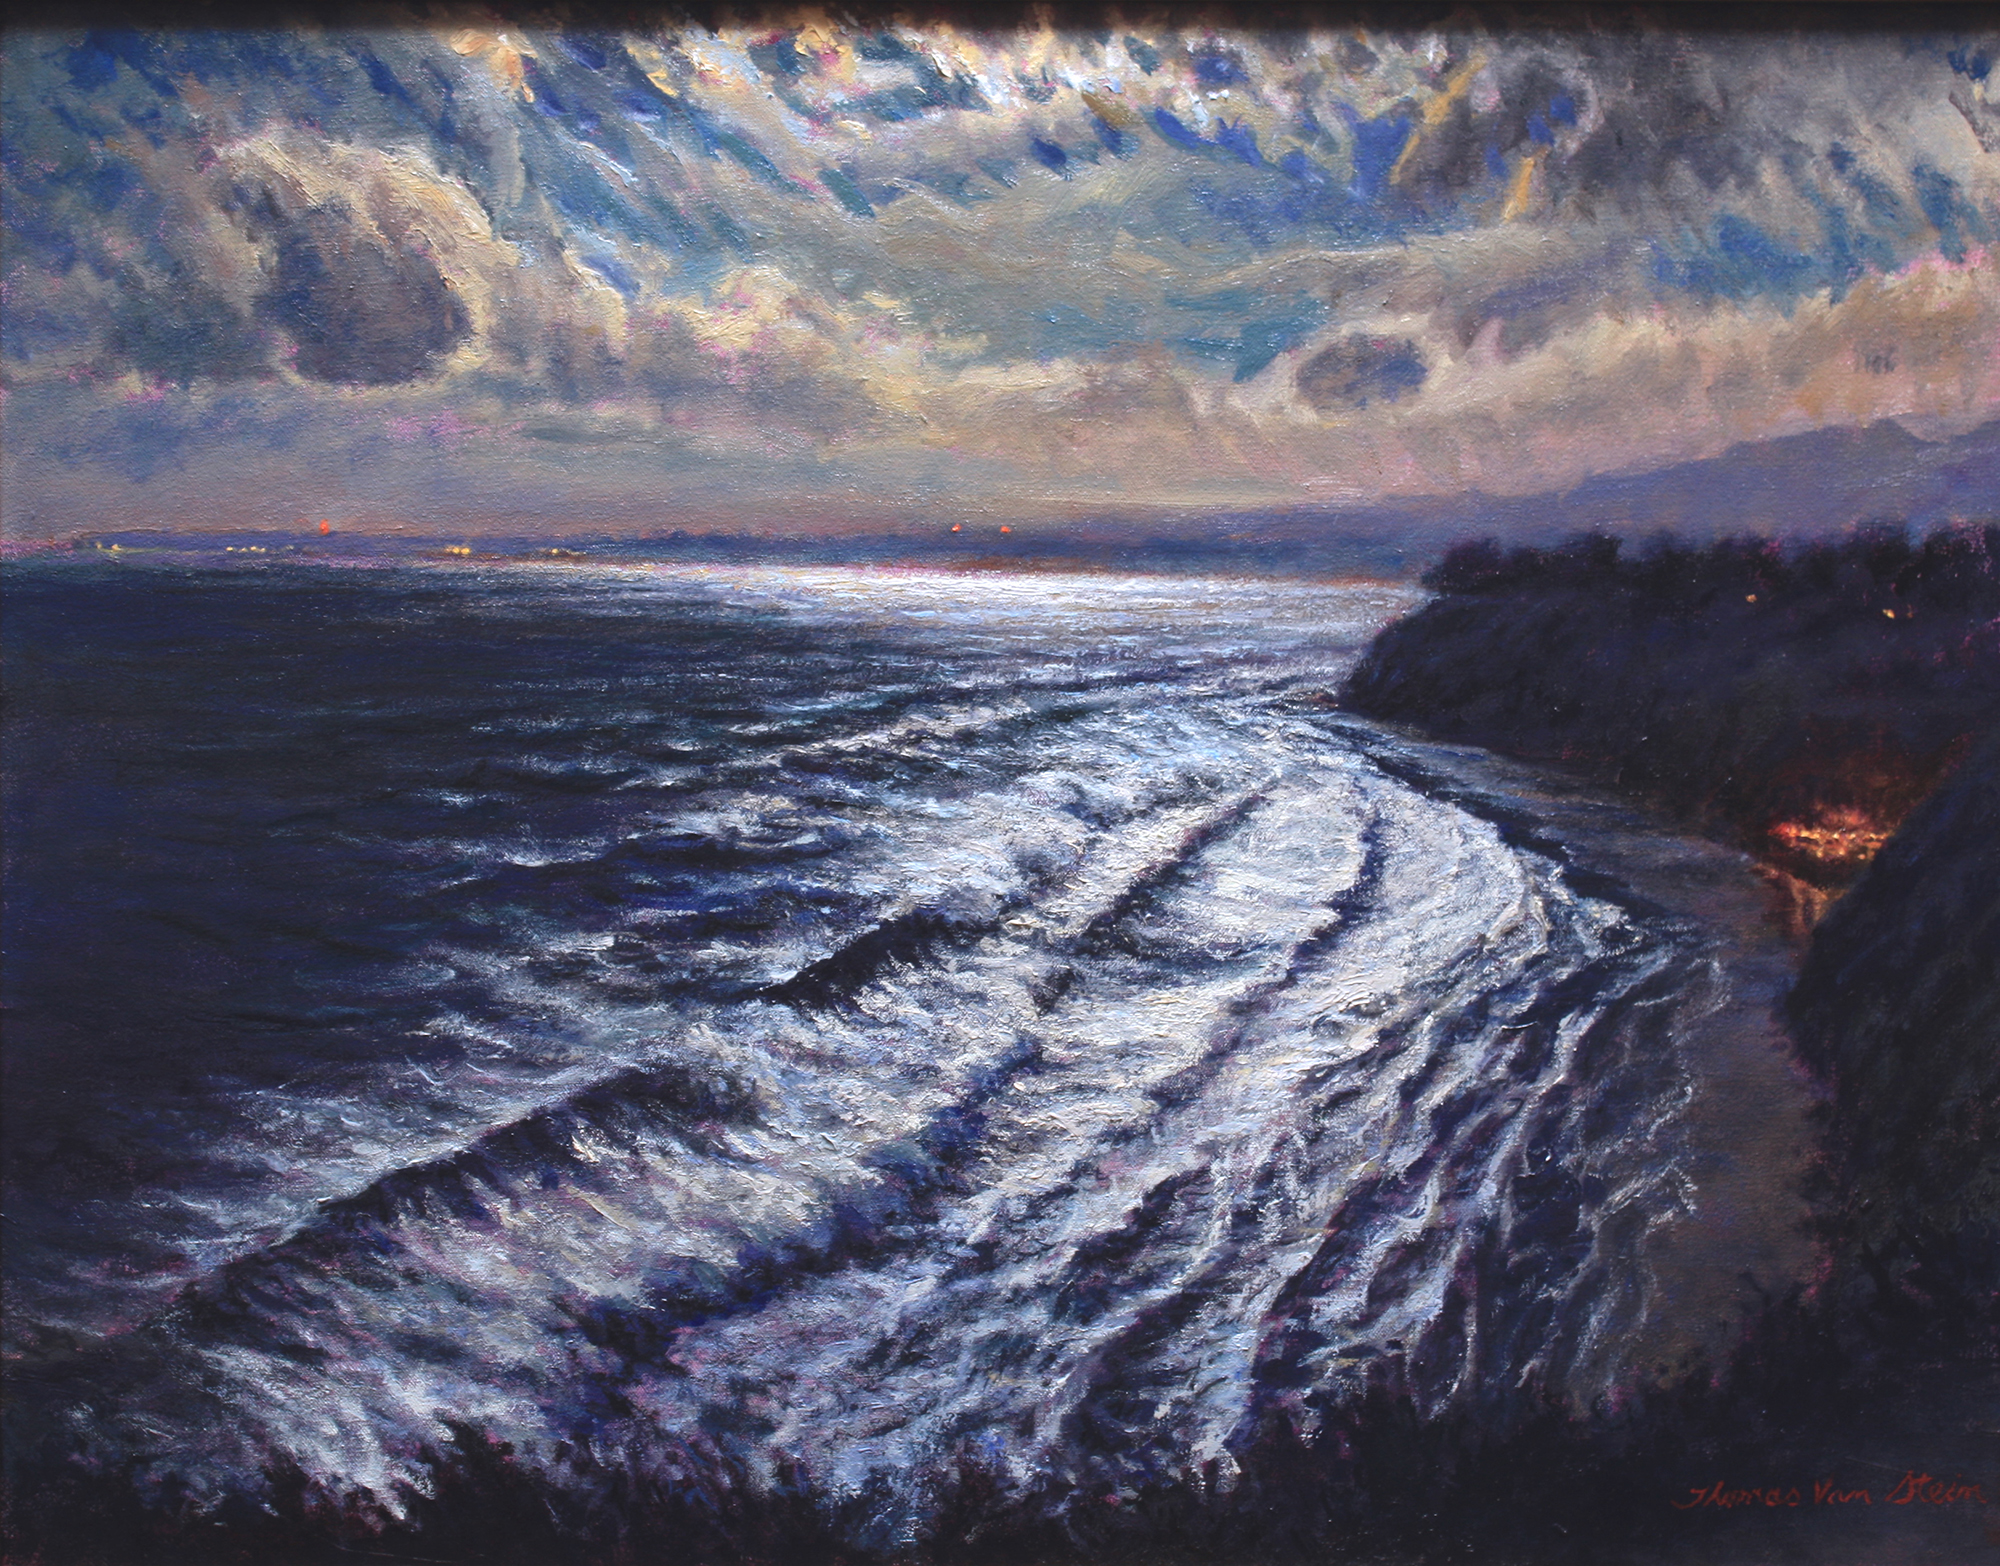 Moonlit Surf, Arroyo Burro Beach,  22x28, oil on canvas, 2019